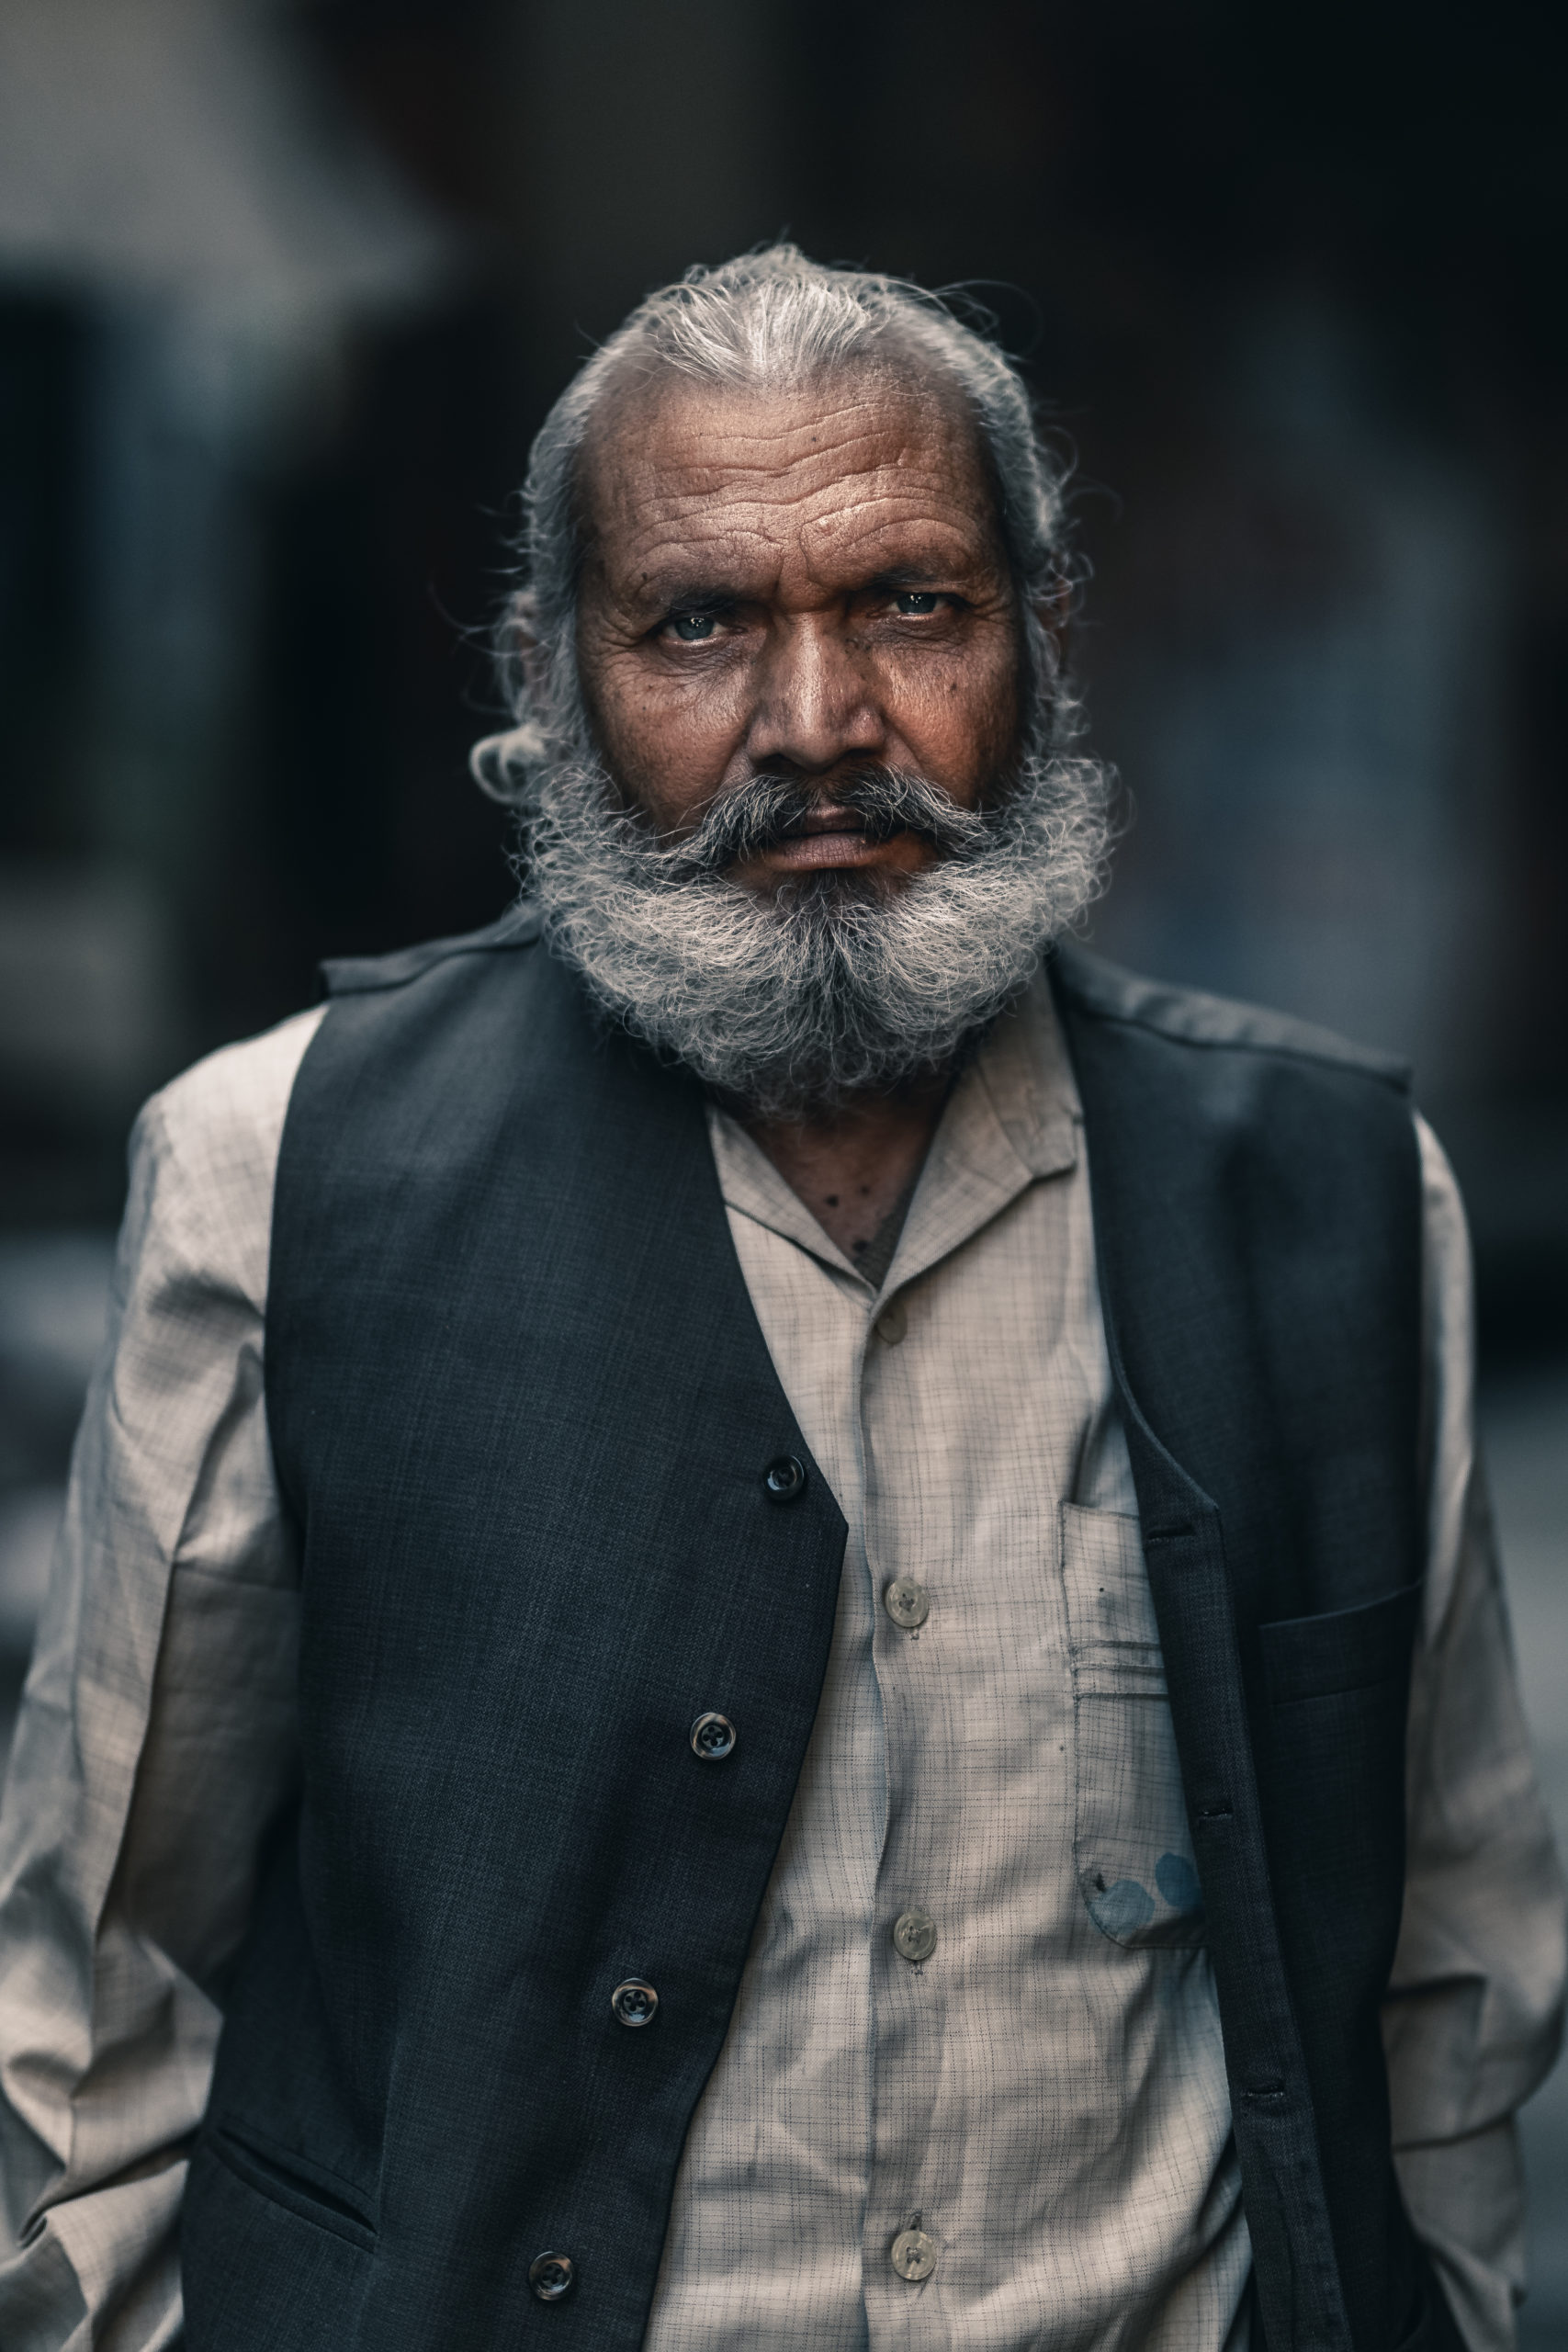 Portrait street photography of an old man in the streets of Mathura, India